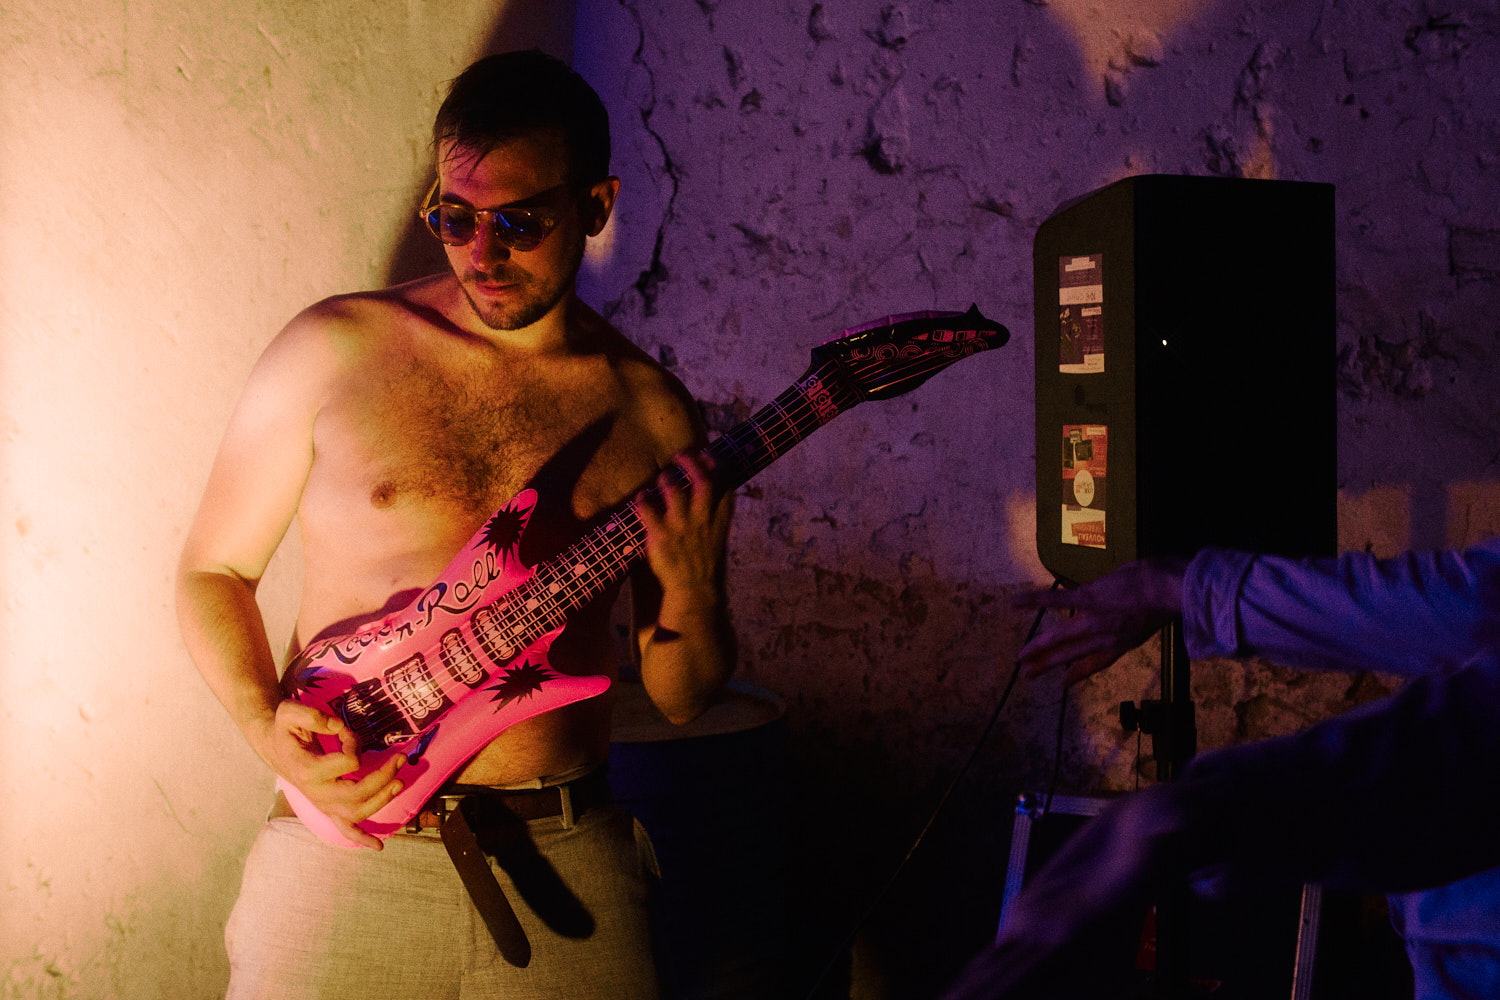 A topless dancer plays with an inflatable pink guitar at a wedding